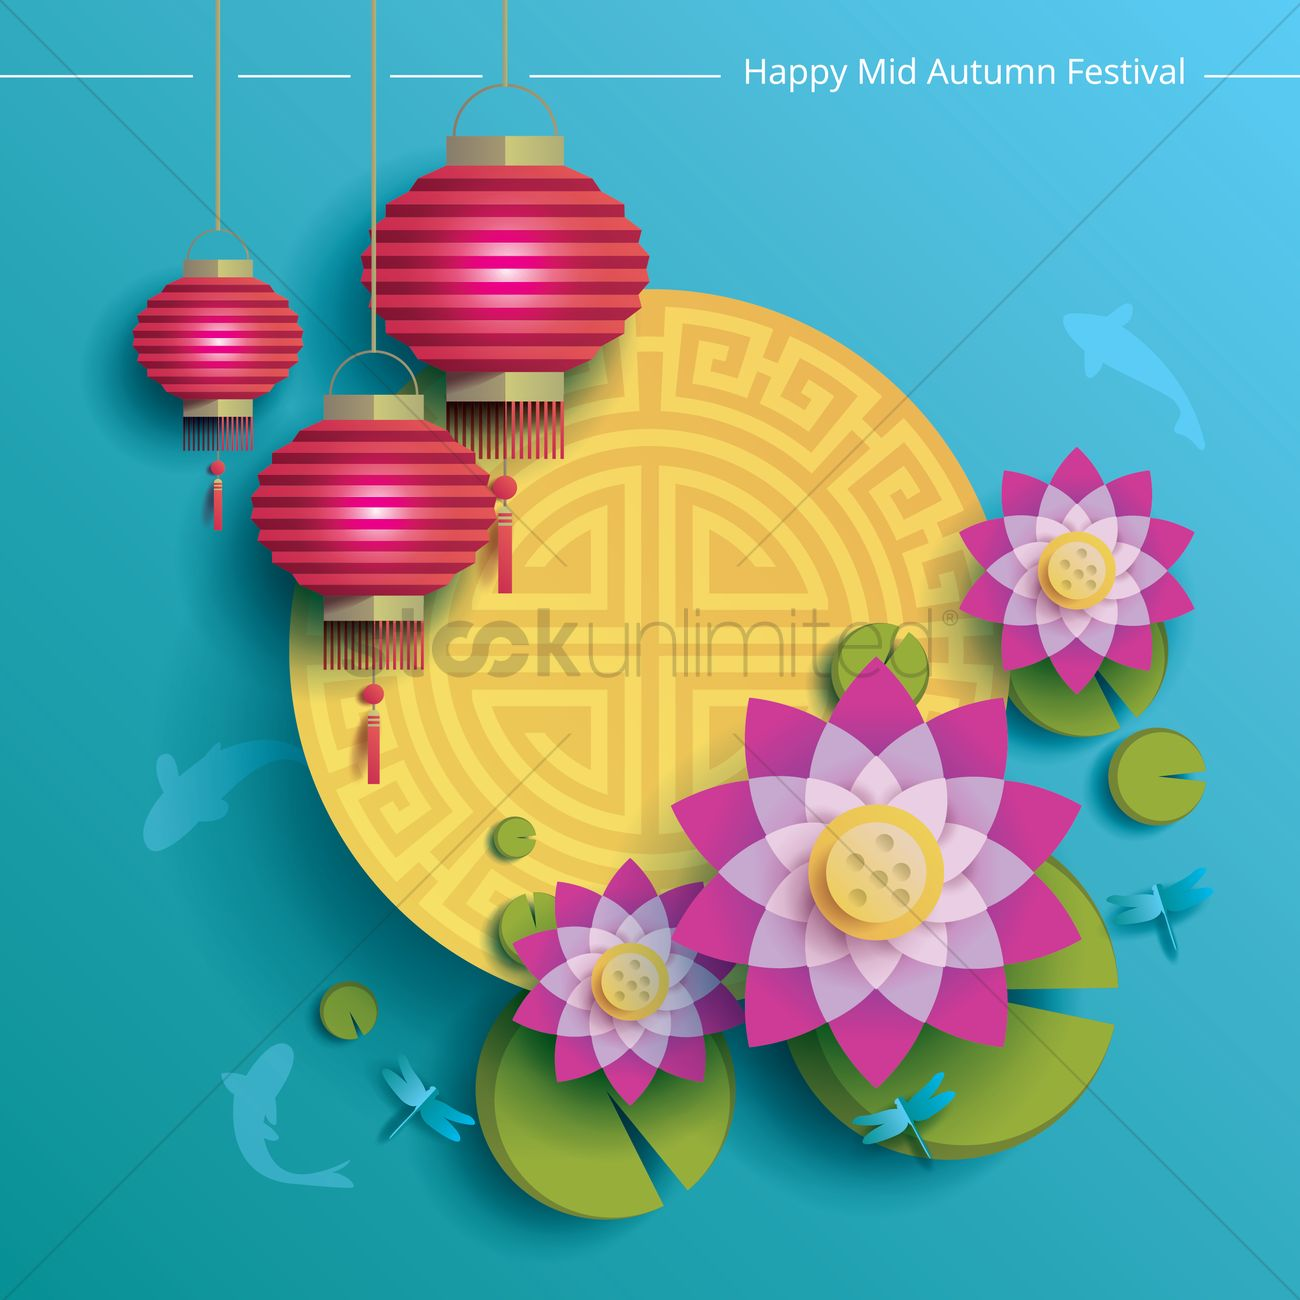 Free Fall Season Wallpapers Happy Mid Autumn Festival Background Vector Image